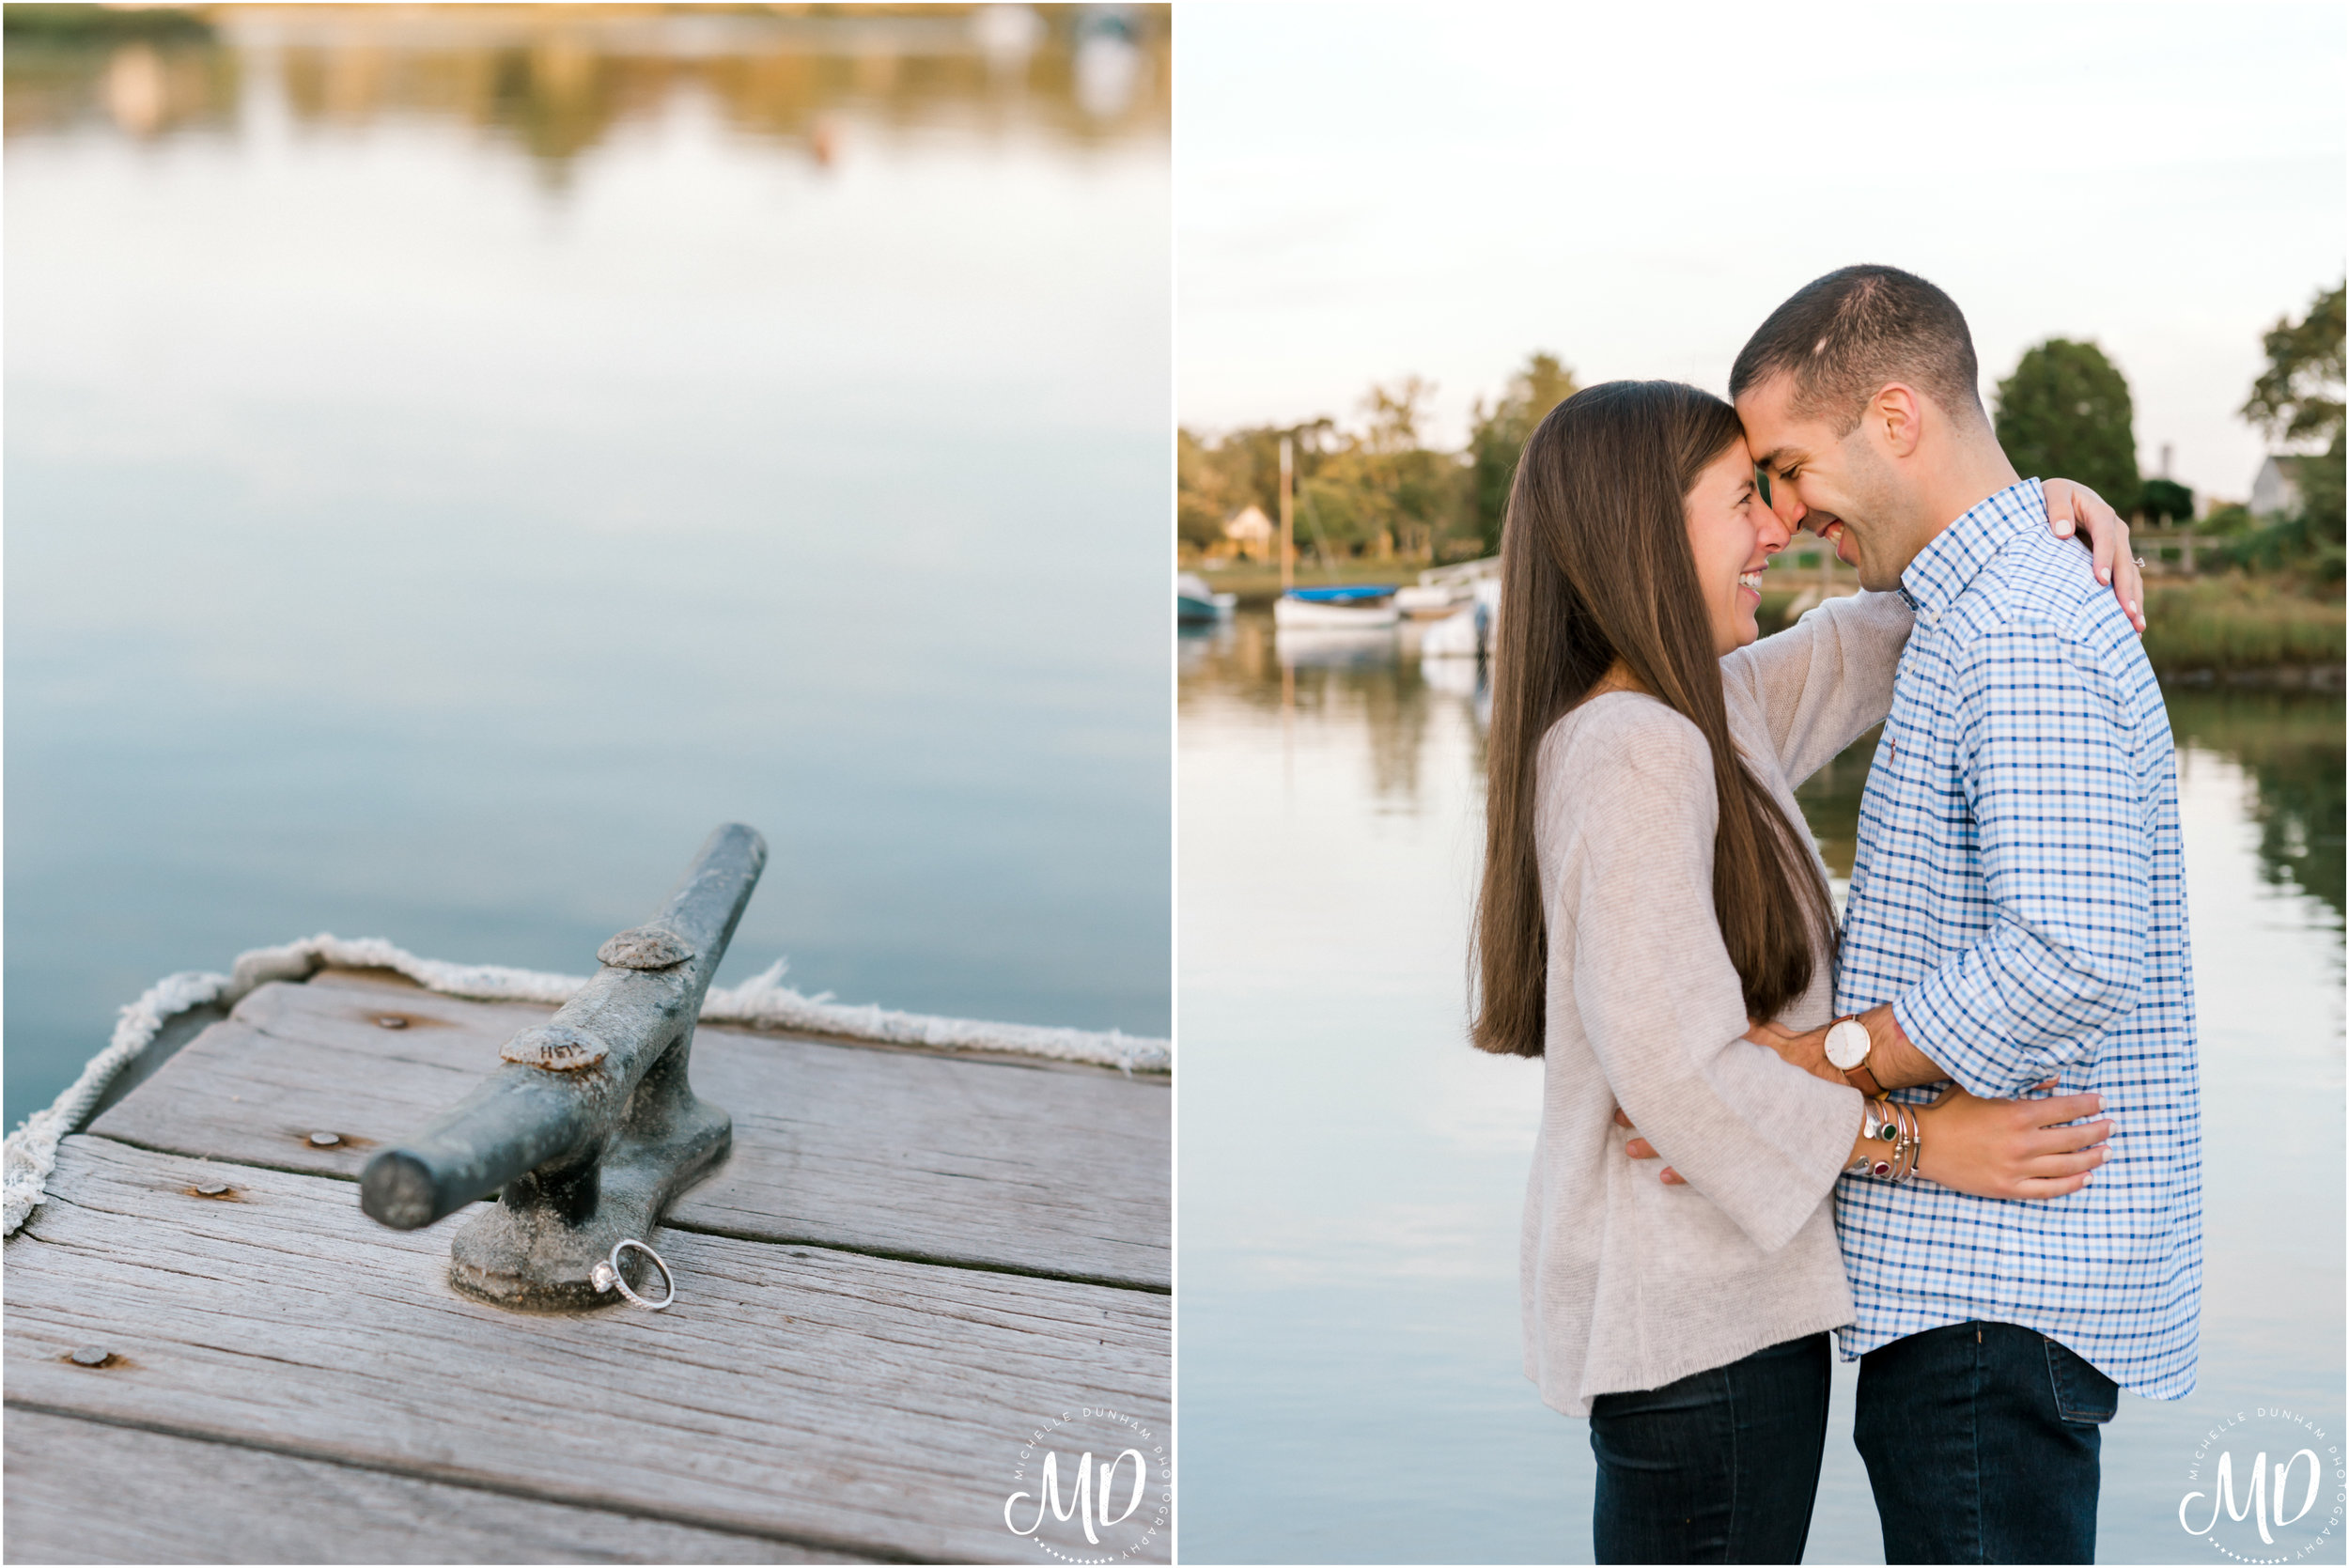 Michelle Dunham Photography-Duxbury-MA-Engagement-Bluefish-River-Bridge 20.jpg